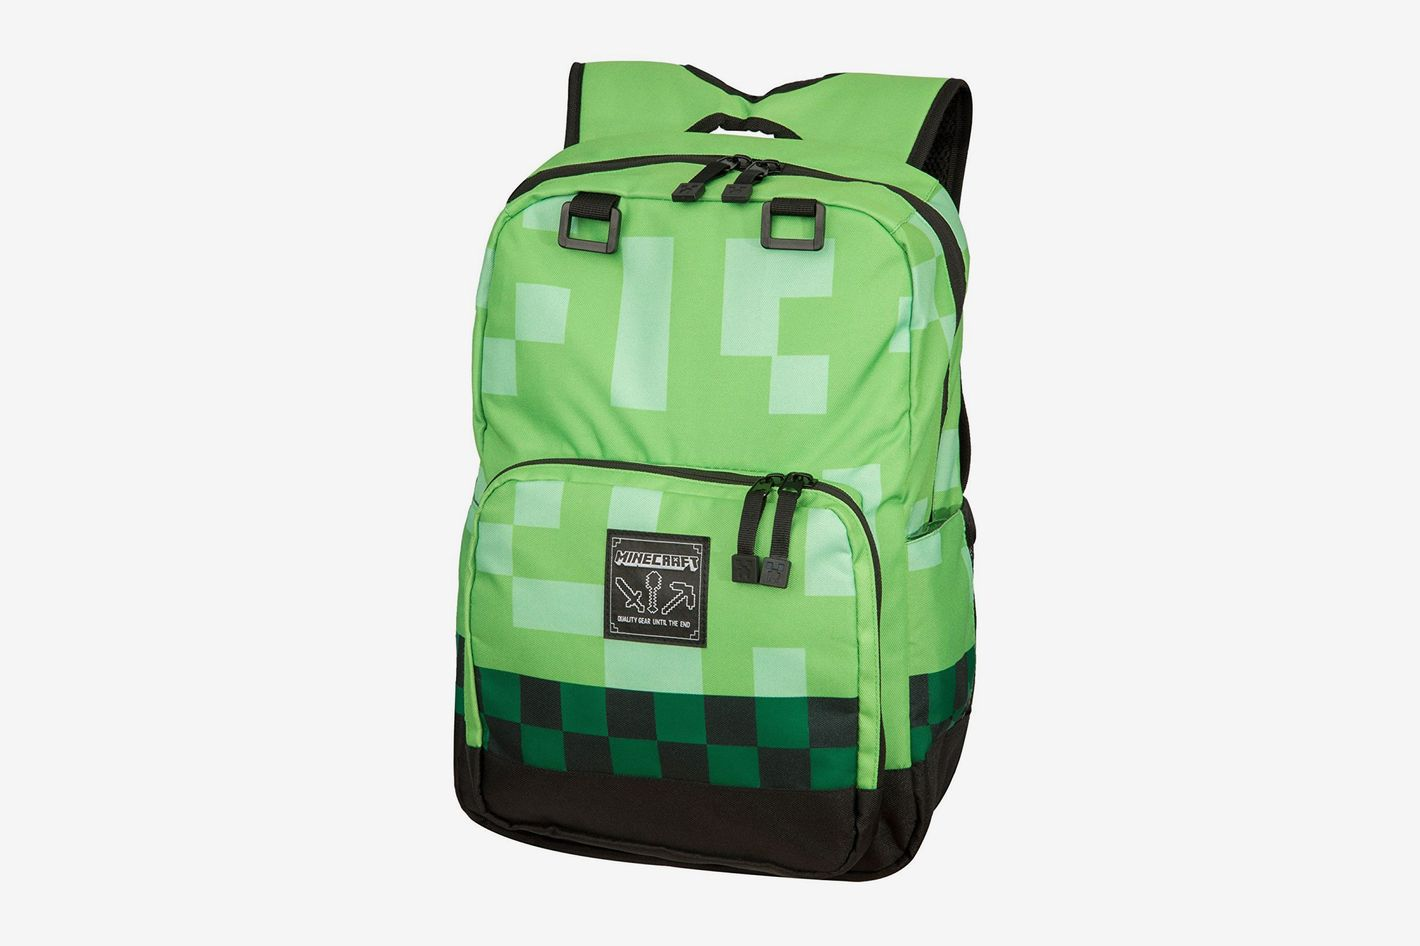 9f174717e8 Jinx Minecraft Creeper Kids Backpack